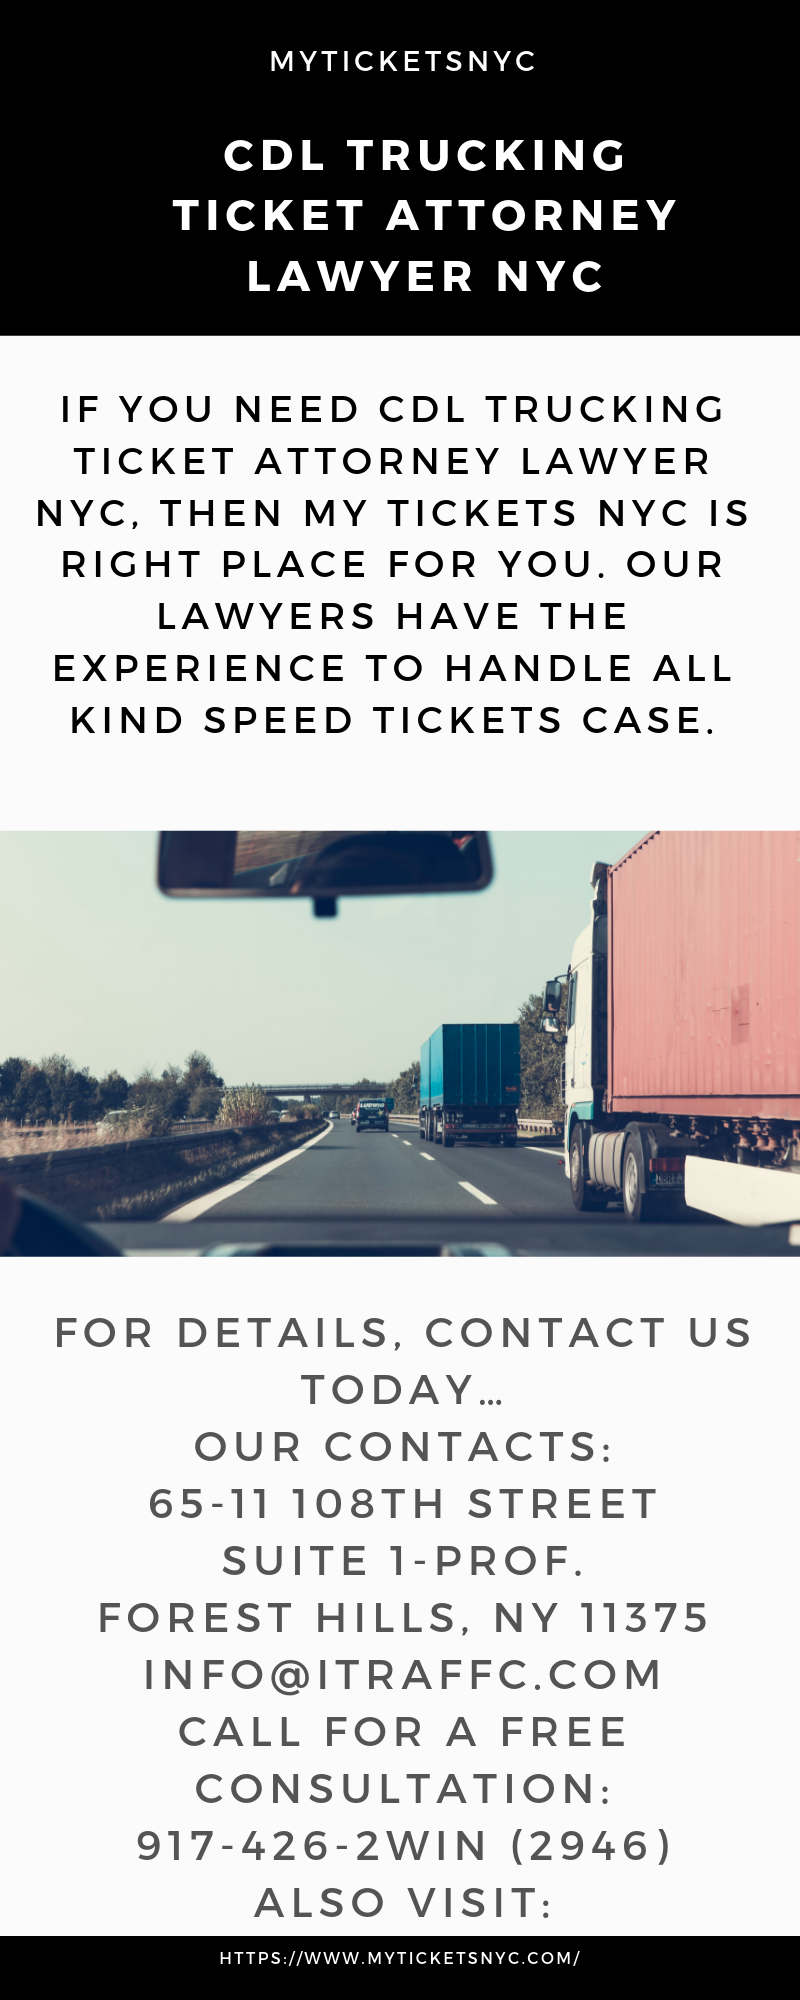 Nyc Traffic Ticket >> Pin By Myticketsnyc On Cdl Trucking Ticket Attorney Lawyer